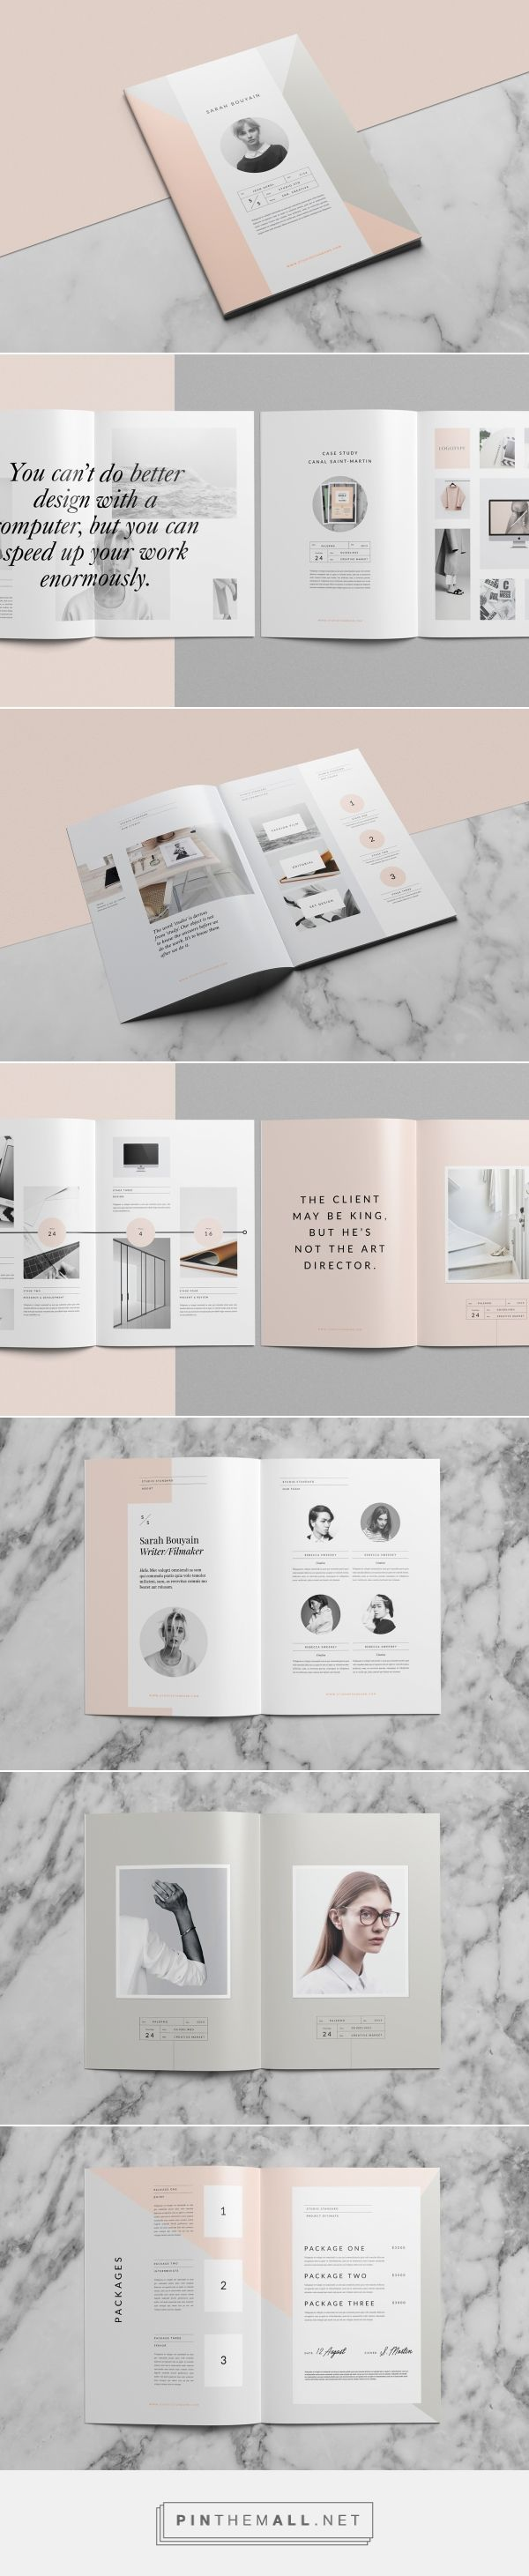 professional layout design